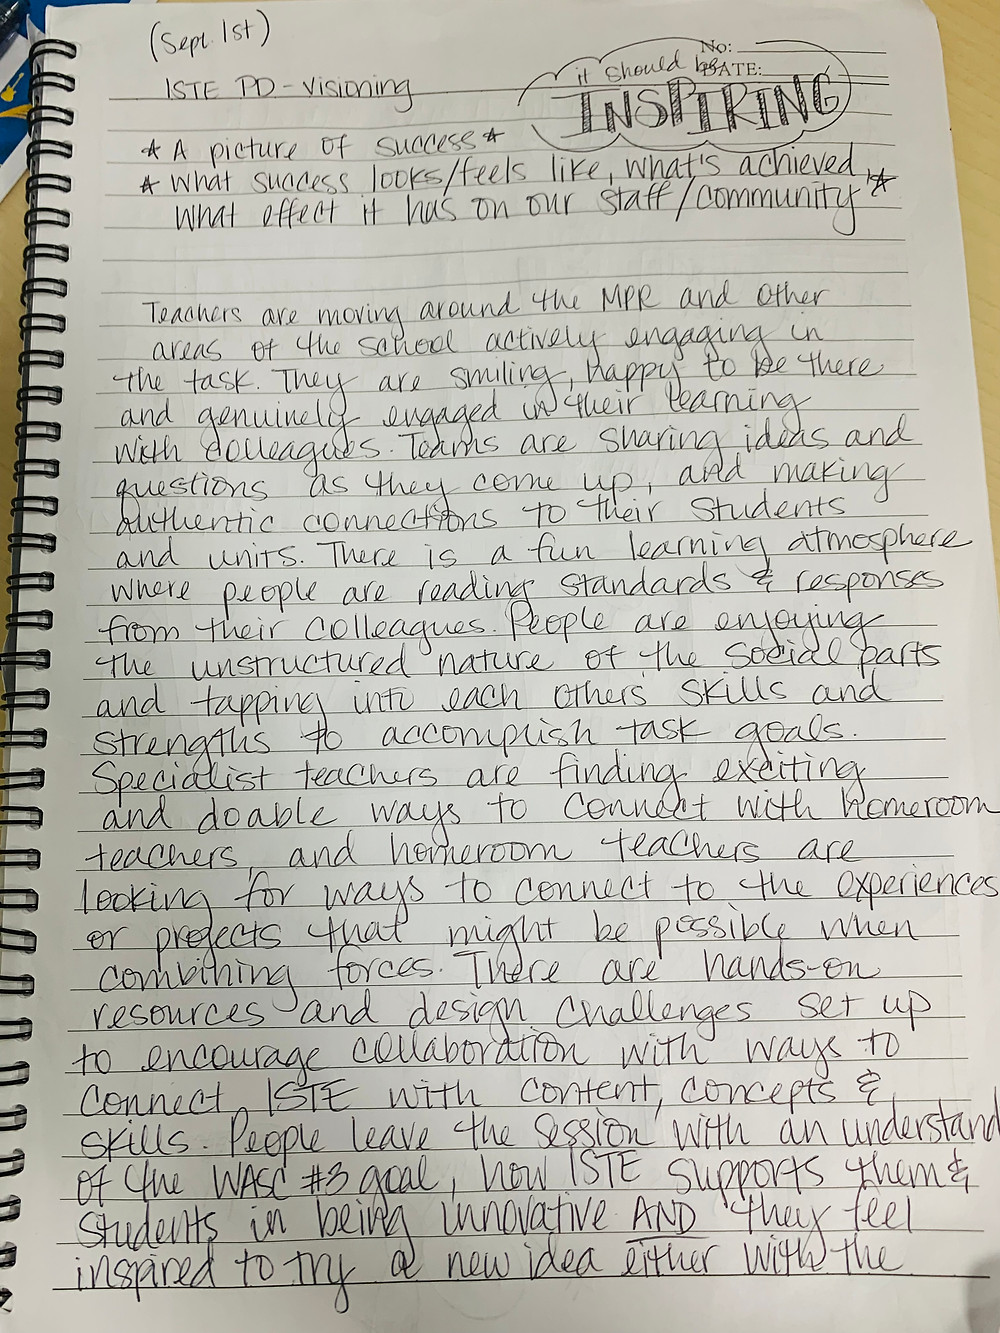 Photo of a journal page